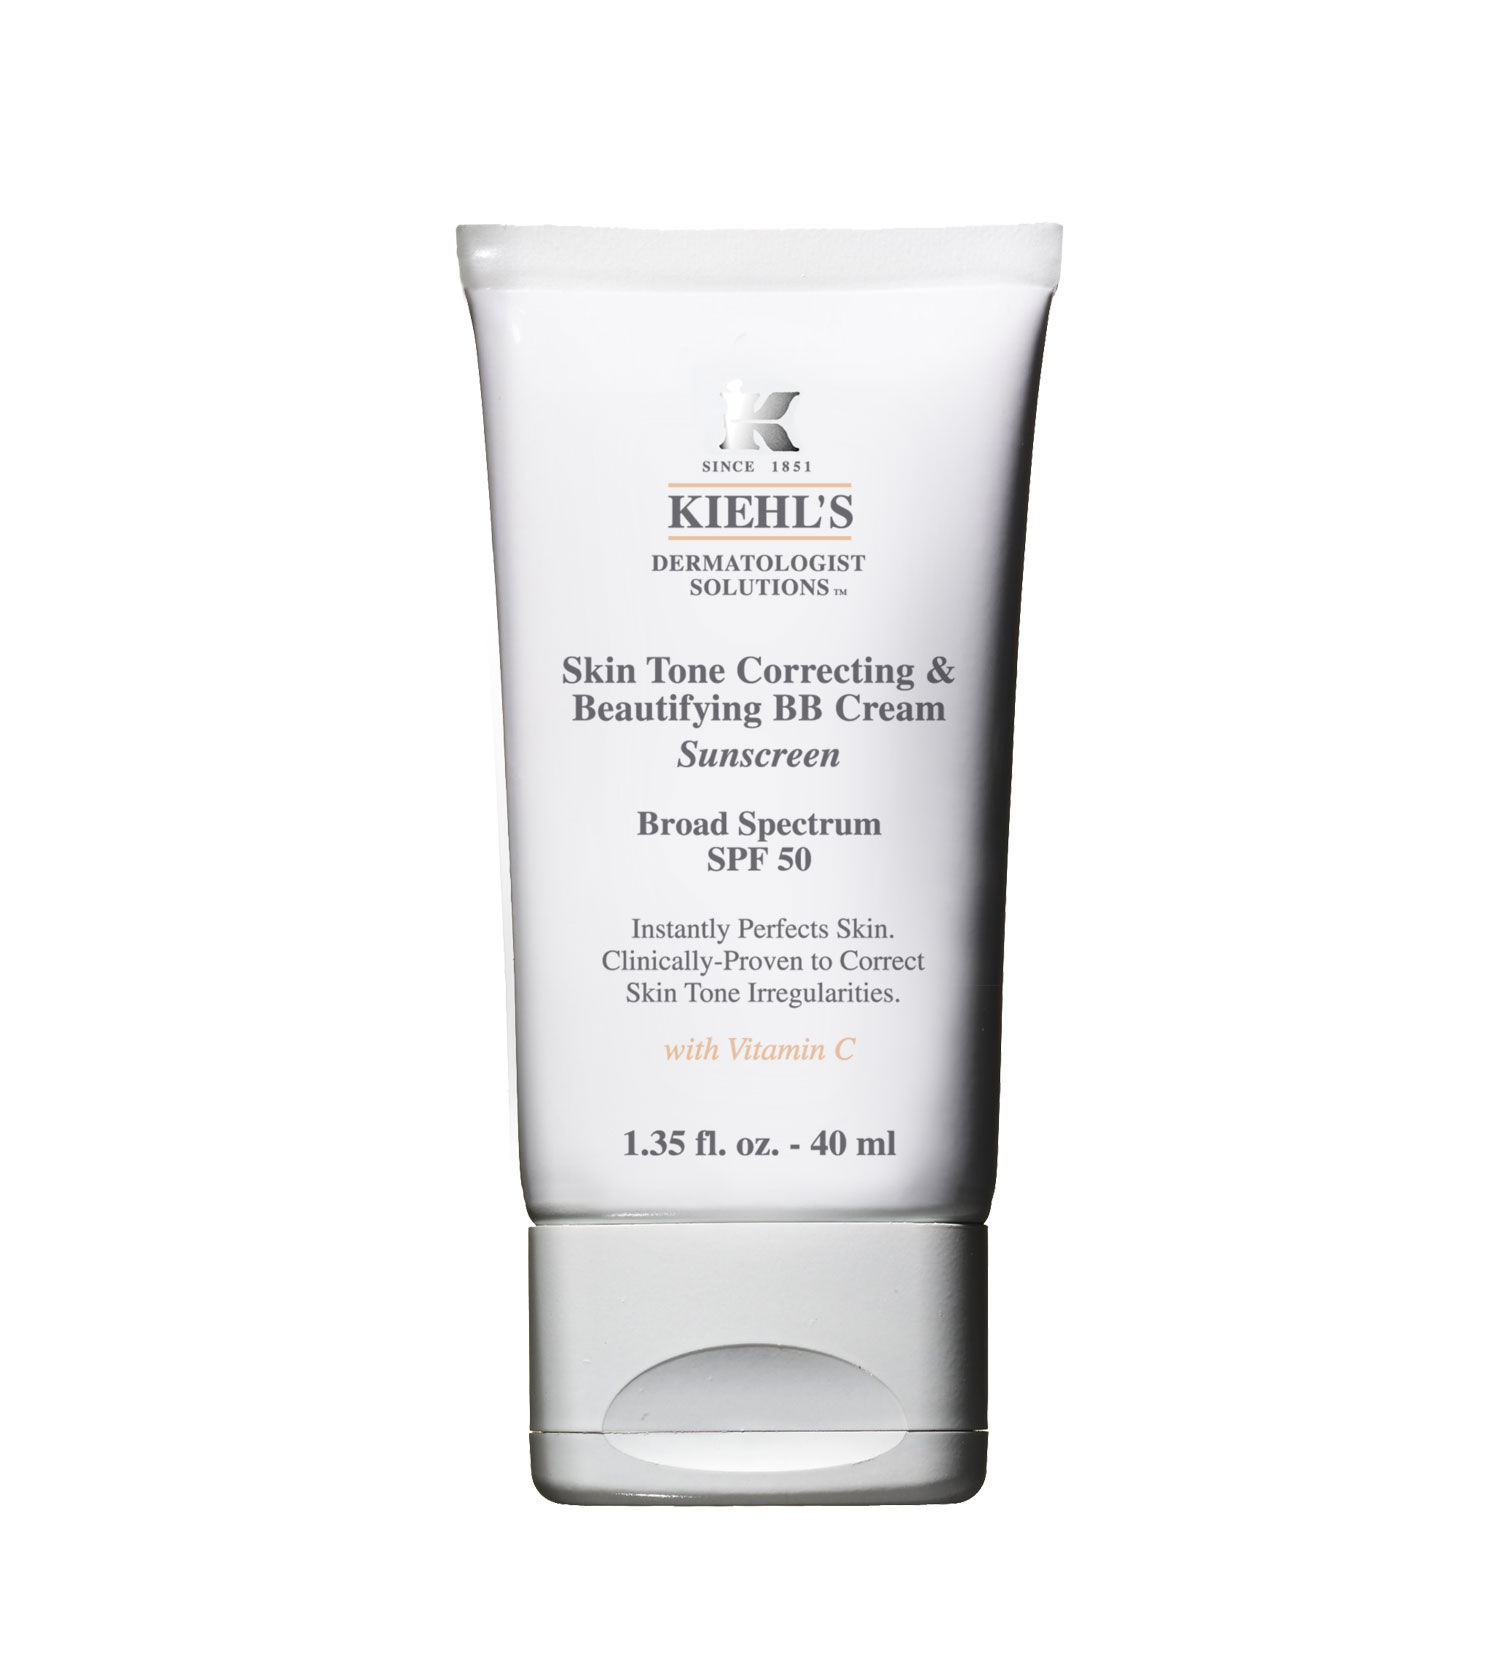 Kiehl's BB Cream